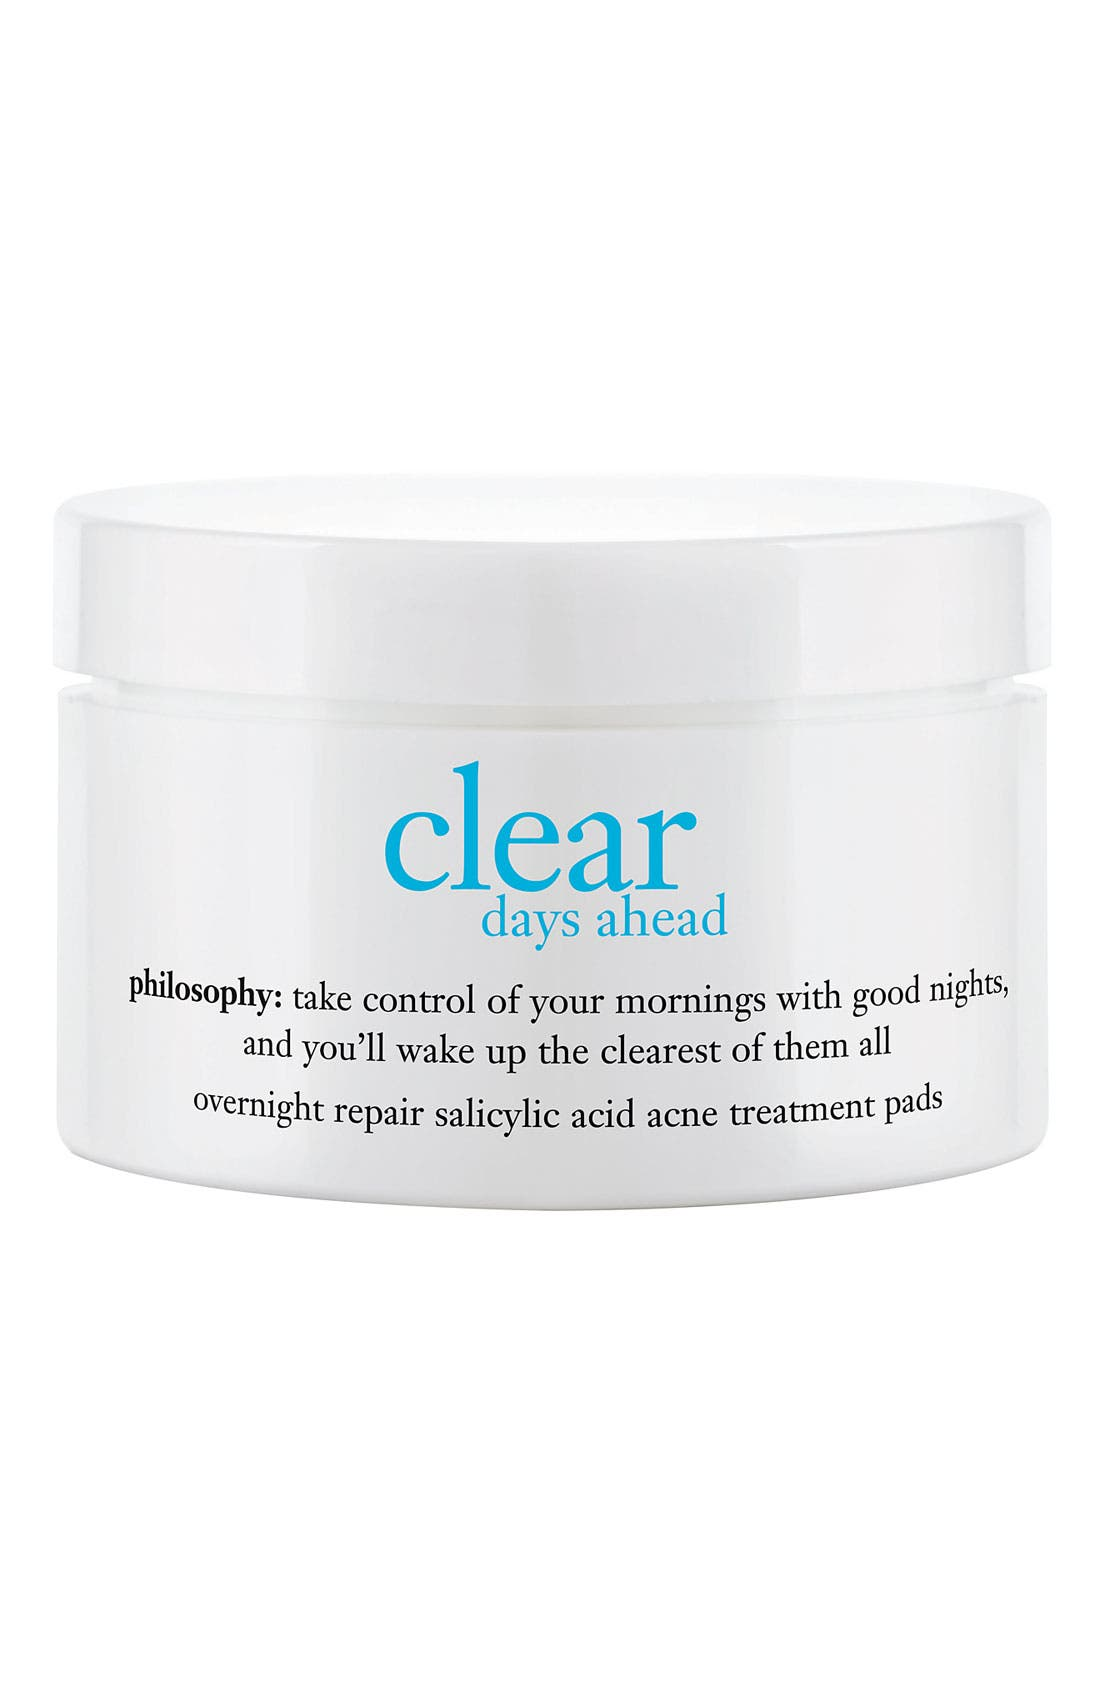 philosophy 'clear days ahead overnight repair' acne treatment pads